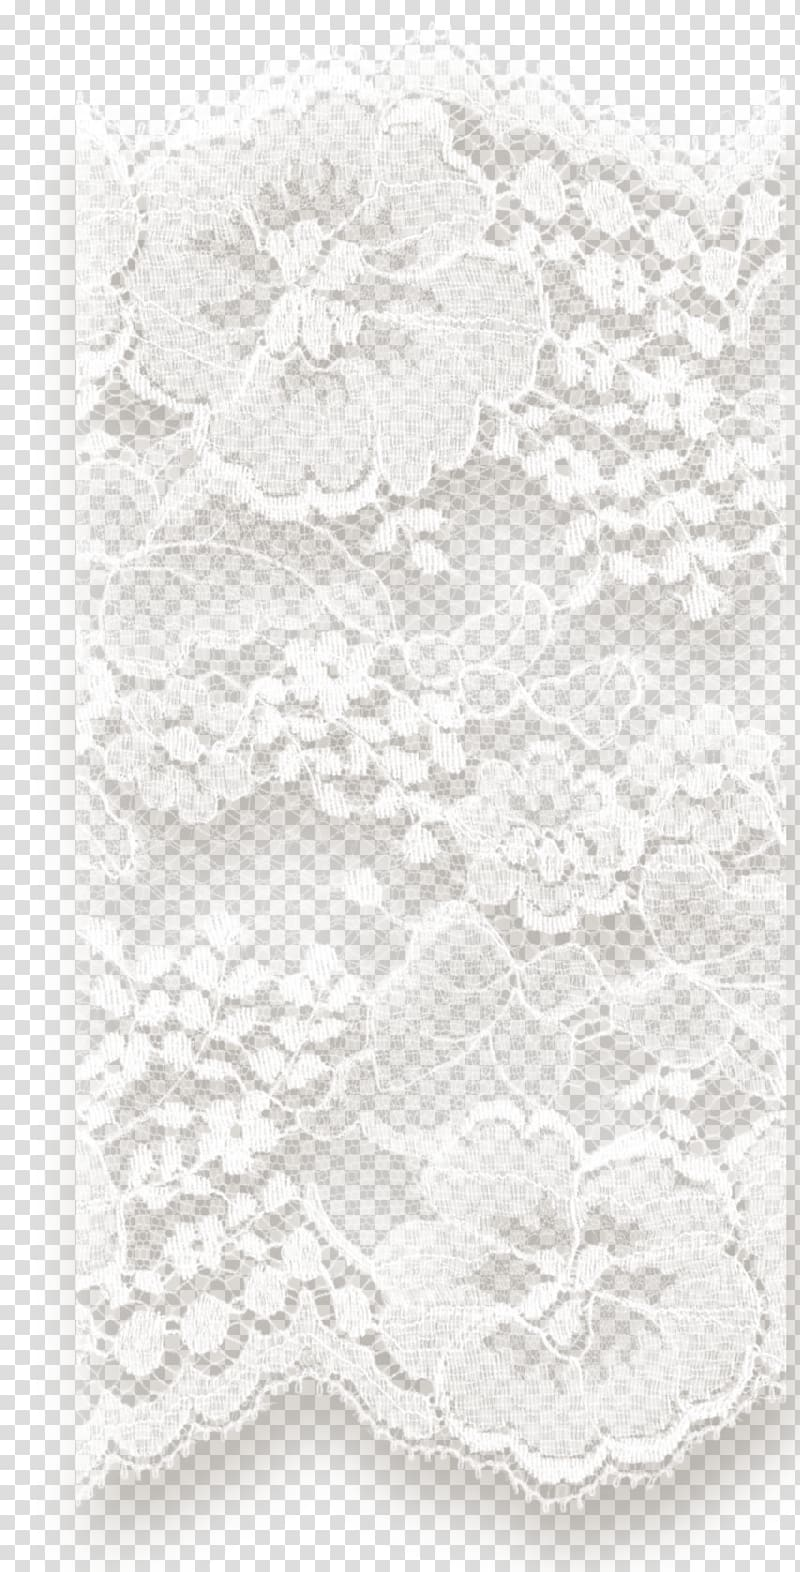 Monochrome Textile White Lace, others transparent background.